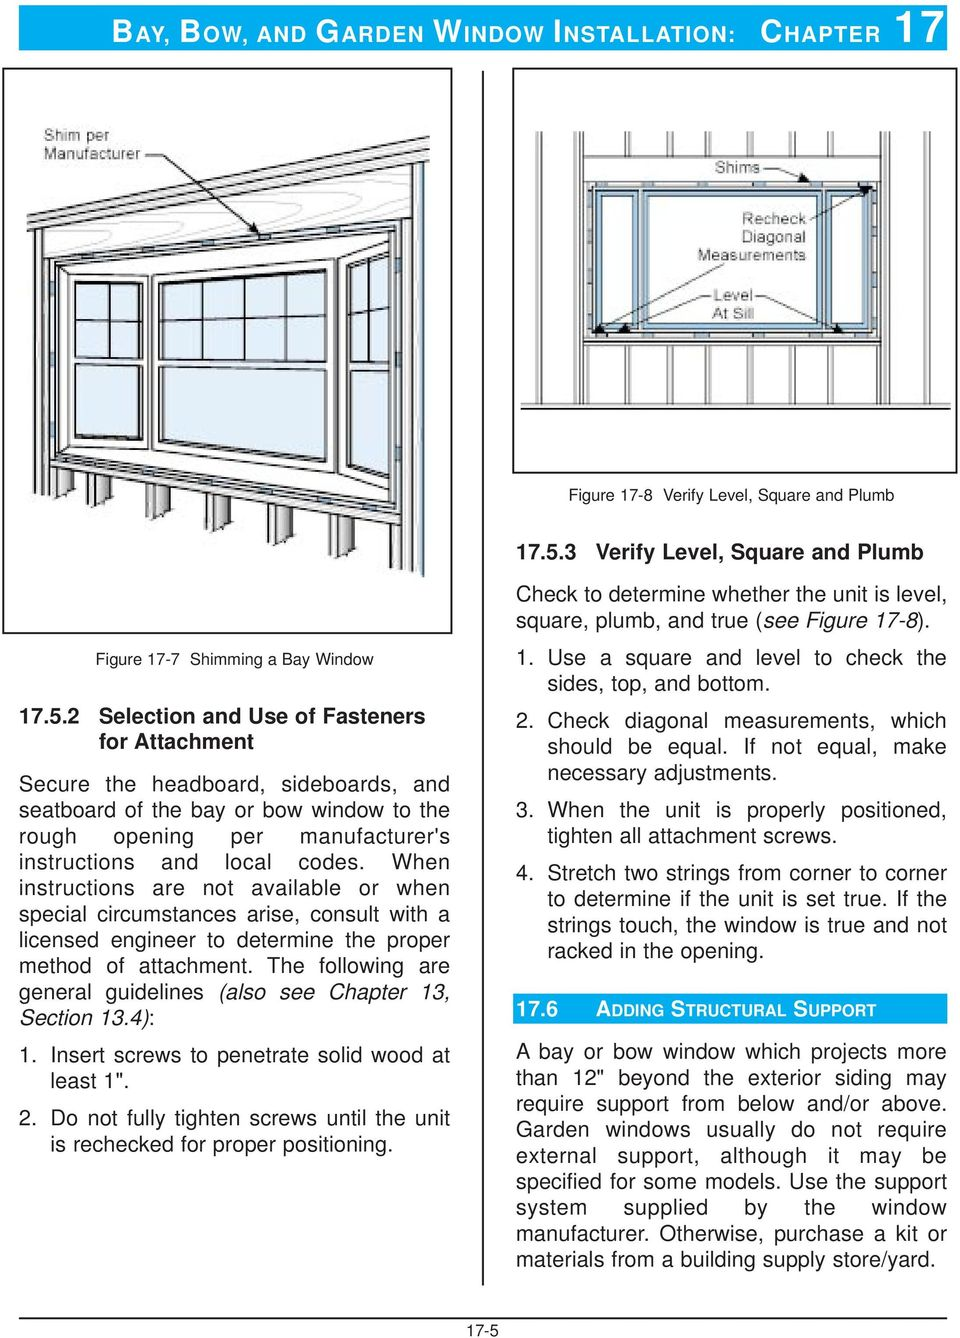 2 Selection and Use of Fasteners for Attachment Secure the headboard, sideboards, and seatboard of the bay or bow window to the rough opening per manufacturer's instructions and local codes.